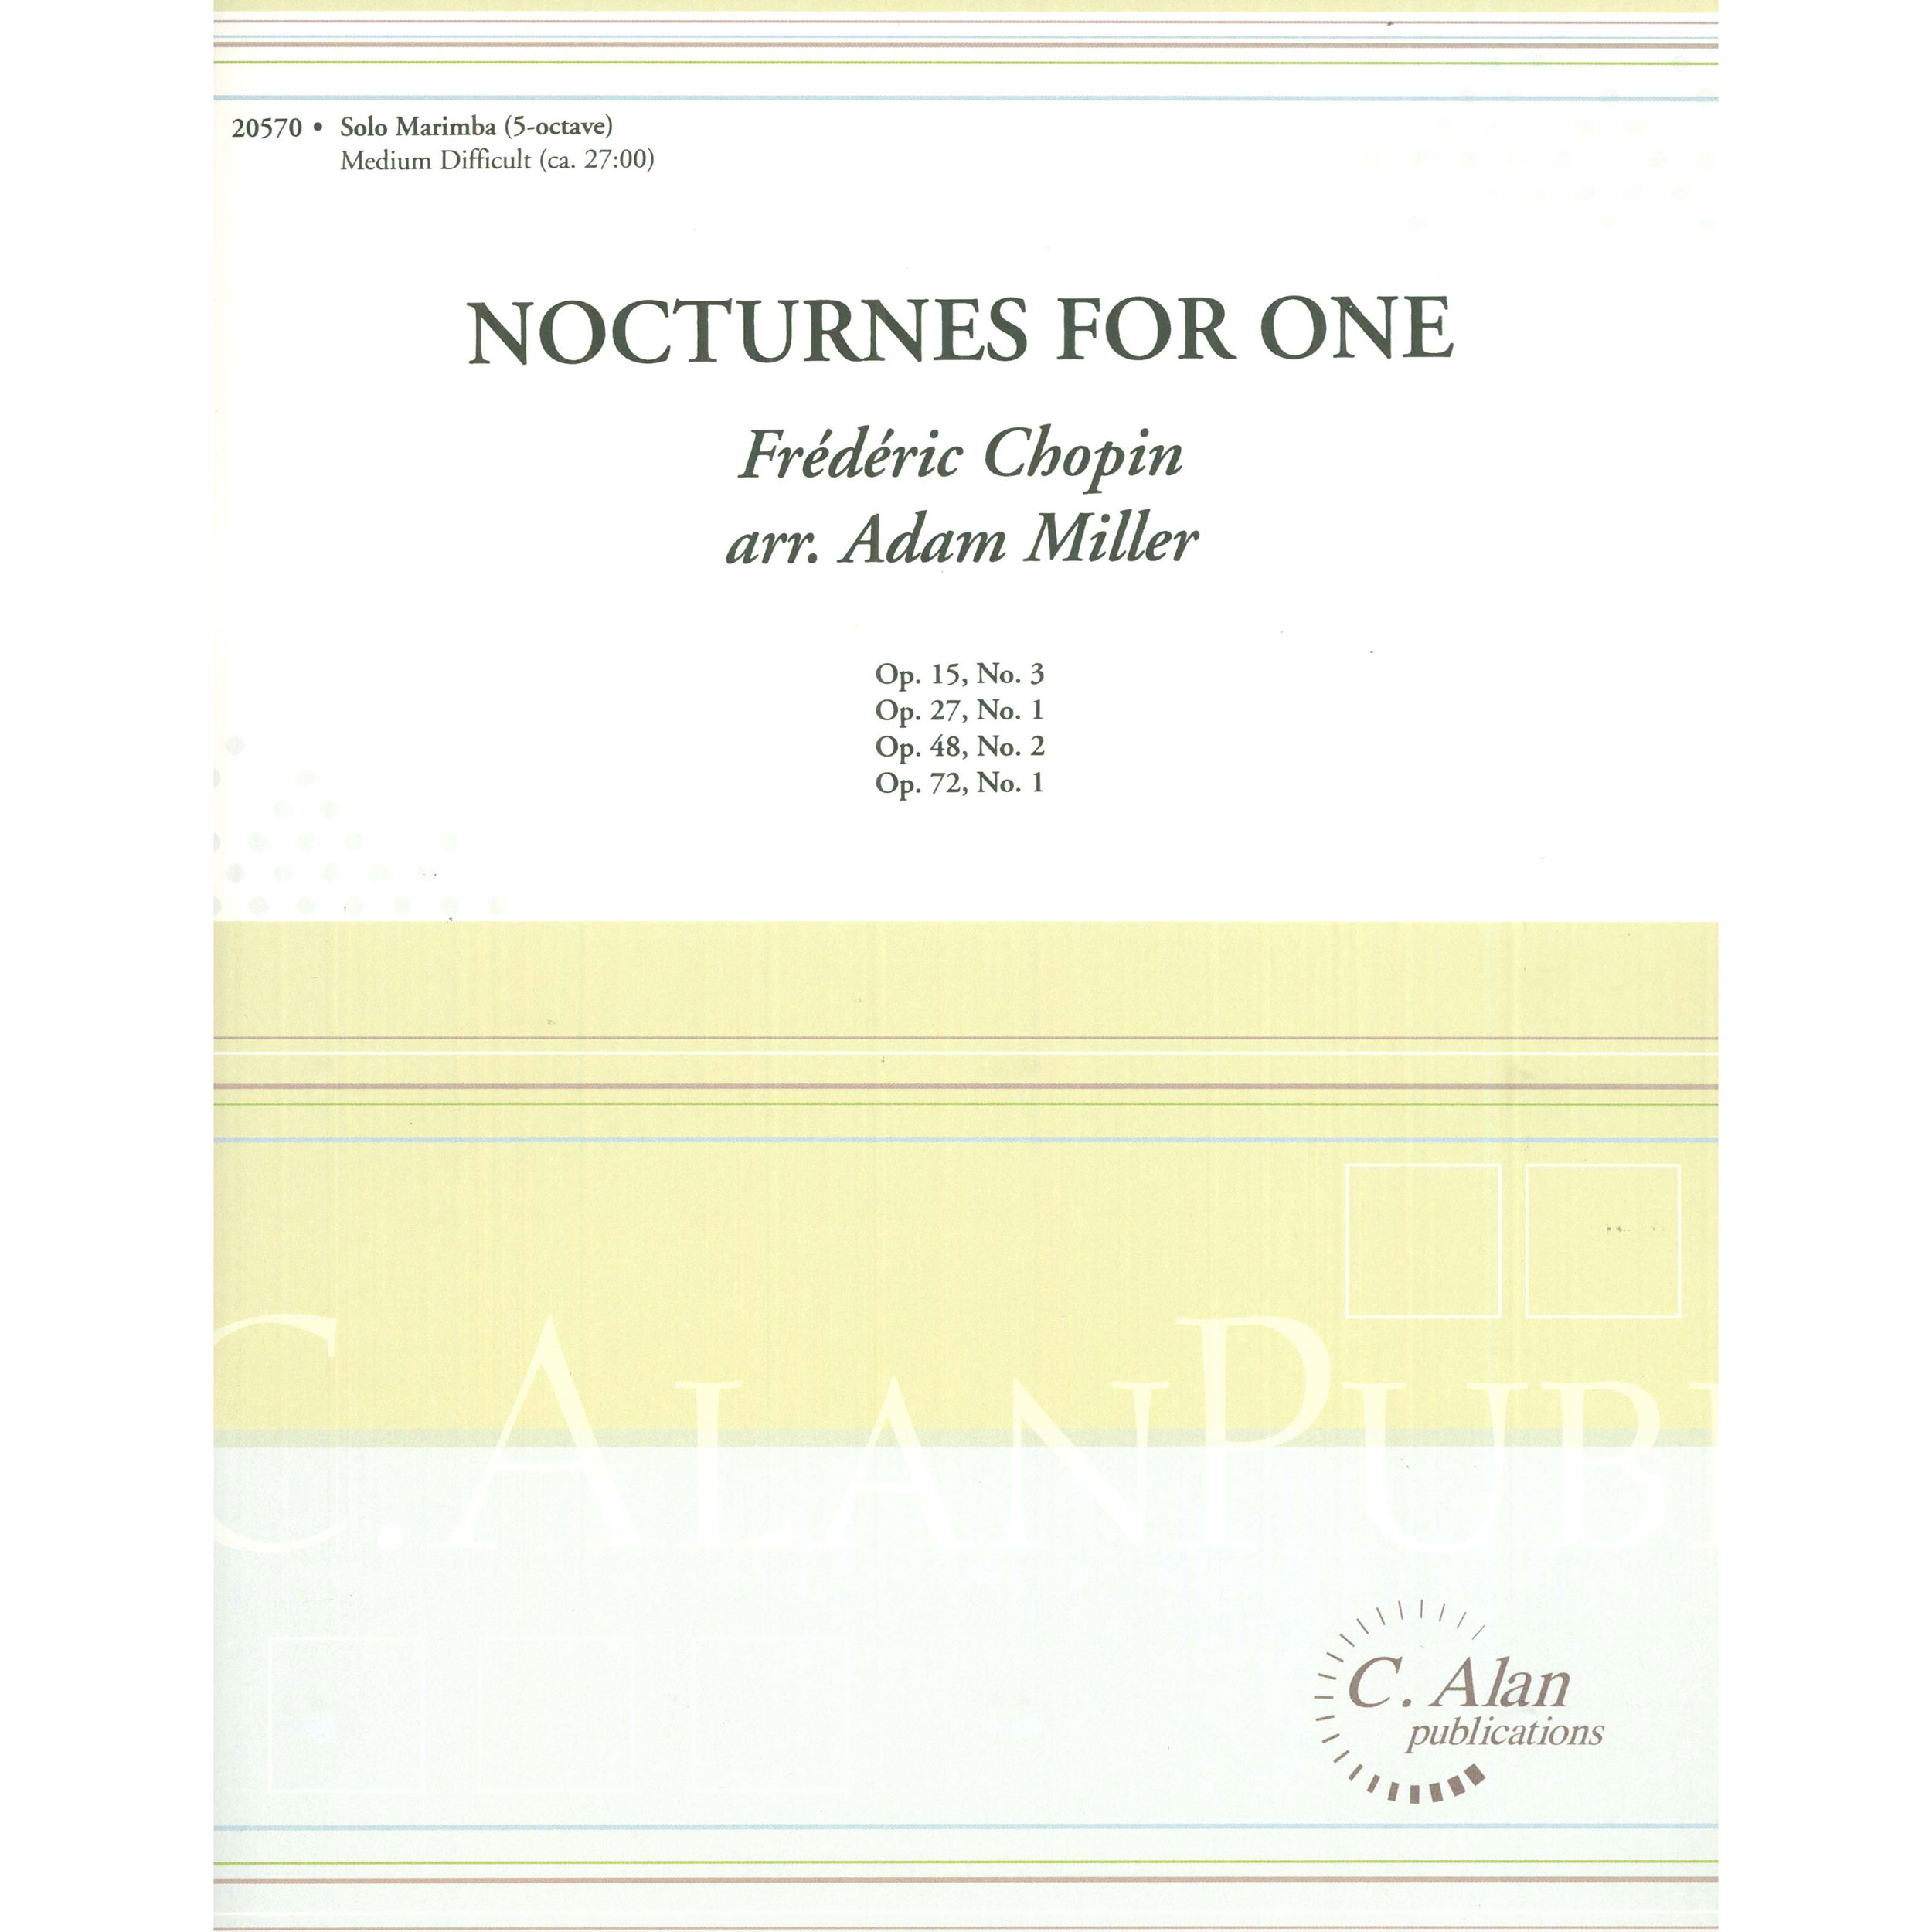 Nocturnes for One by Fredric Chopin arr. Adam Miller